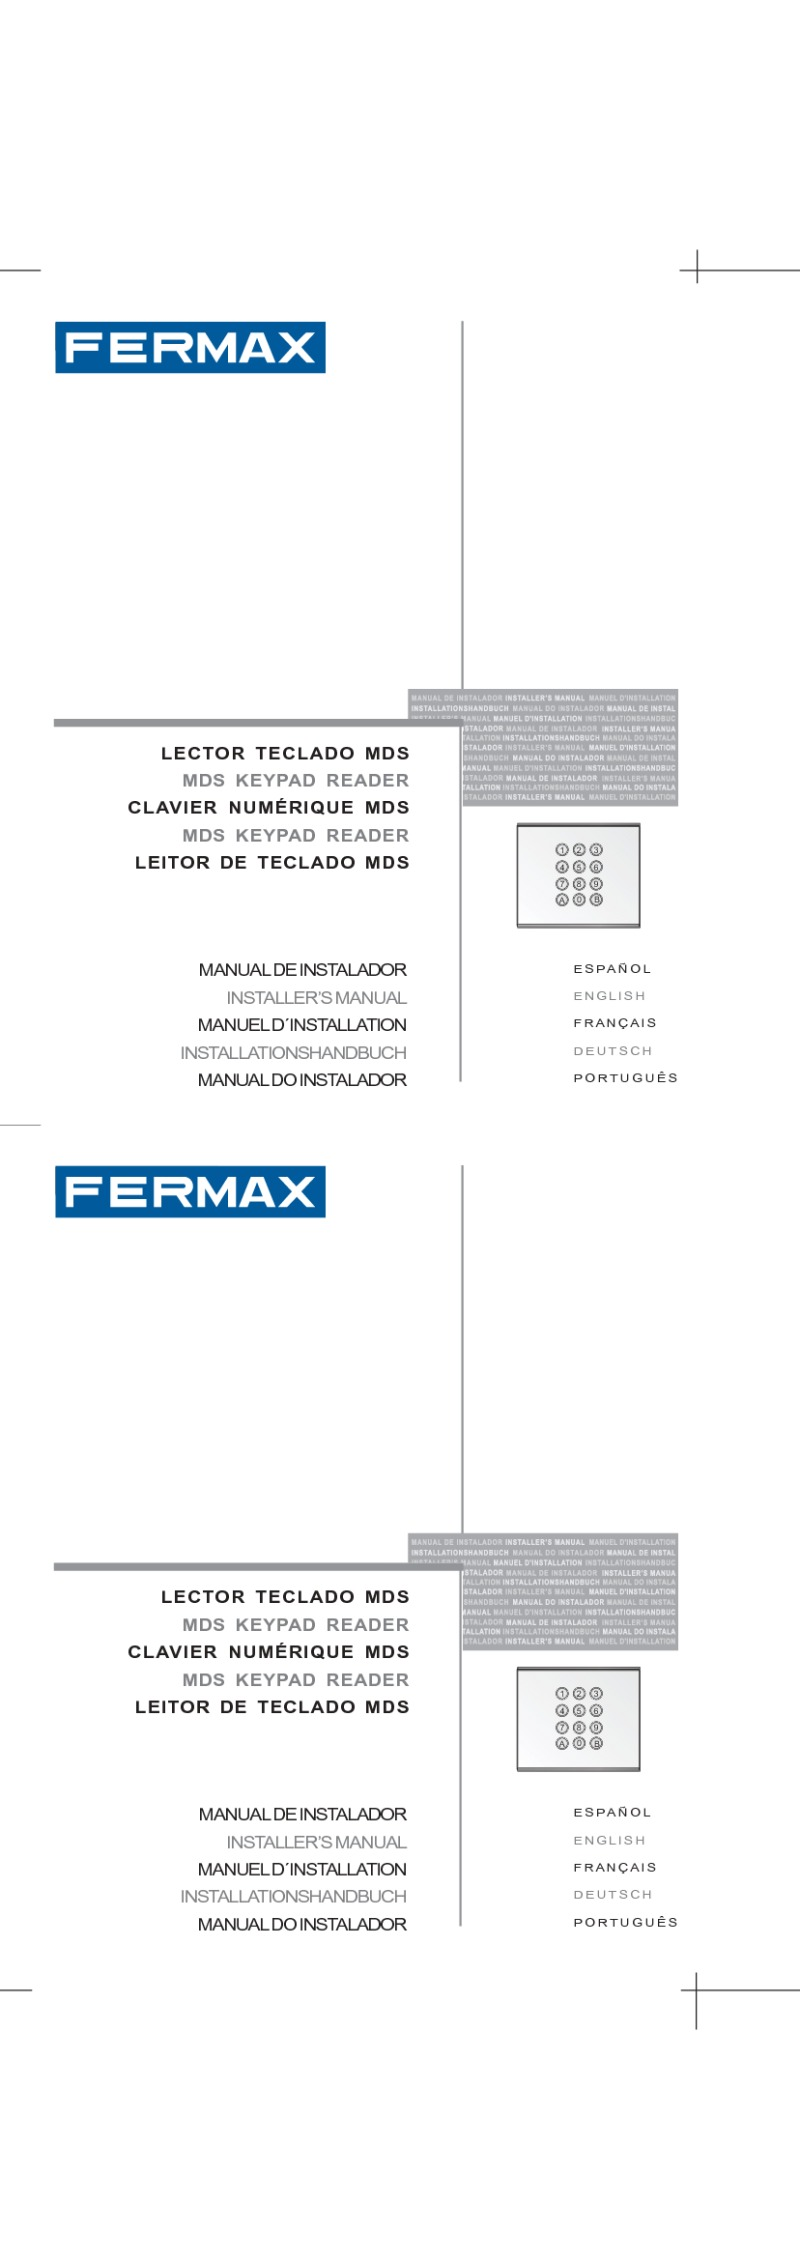 Fermax installation instructions fermax instruction for city mdsac keypad art 6994 publicscrutiny Choice Image